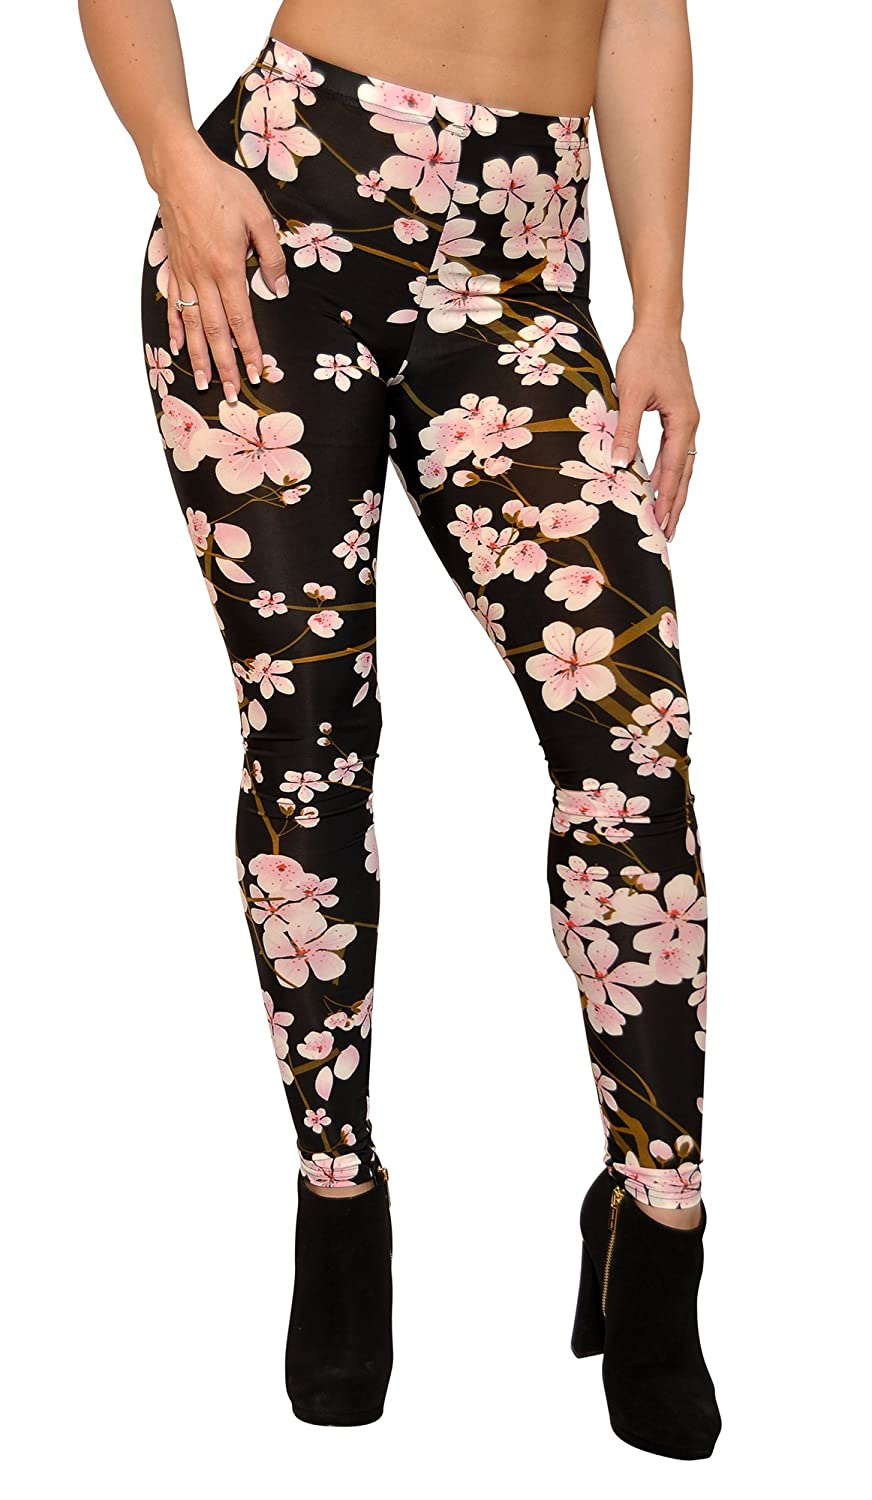 4ec153f58 Amazon.com: BadAssLeggings Women's Cherry Blossom Leggings XL Black:  Clothing